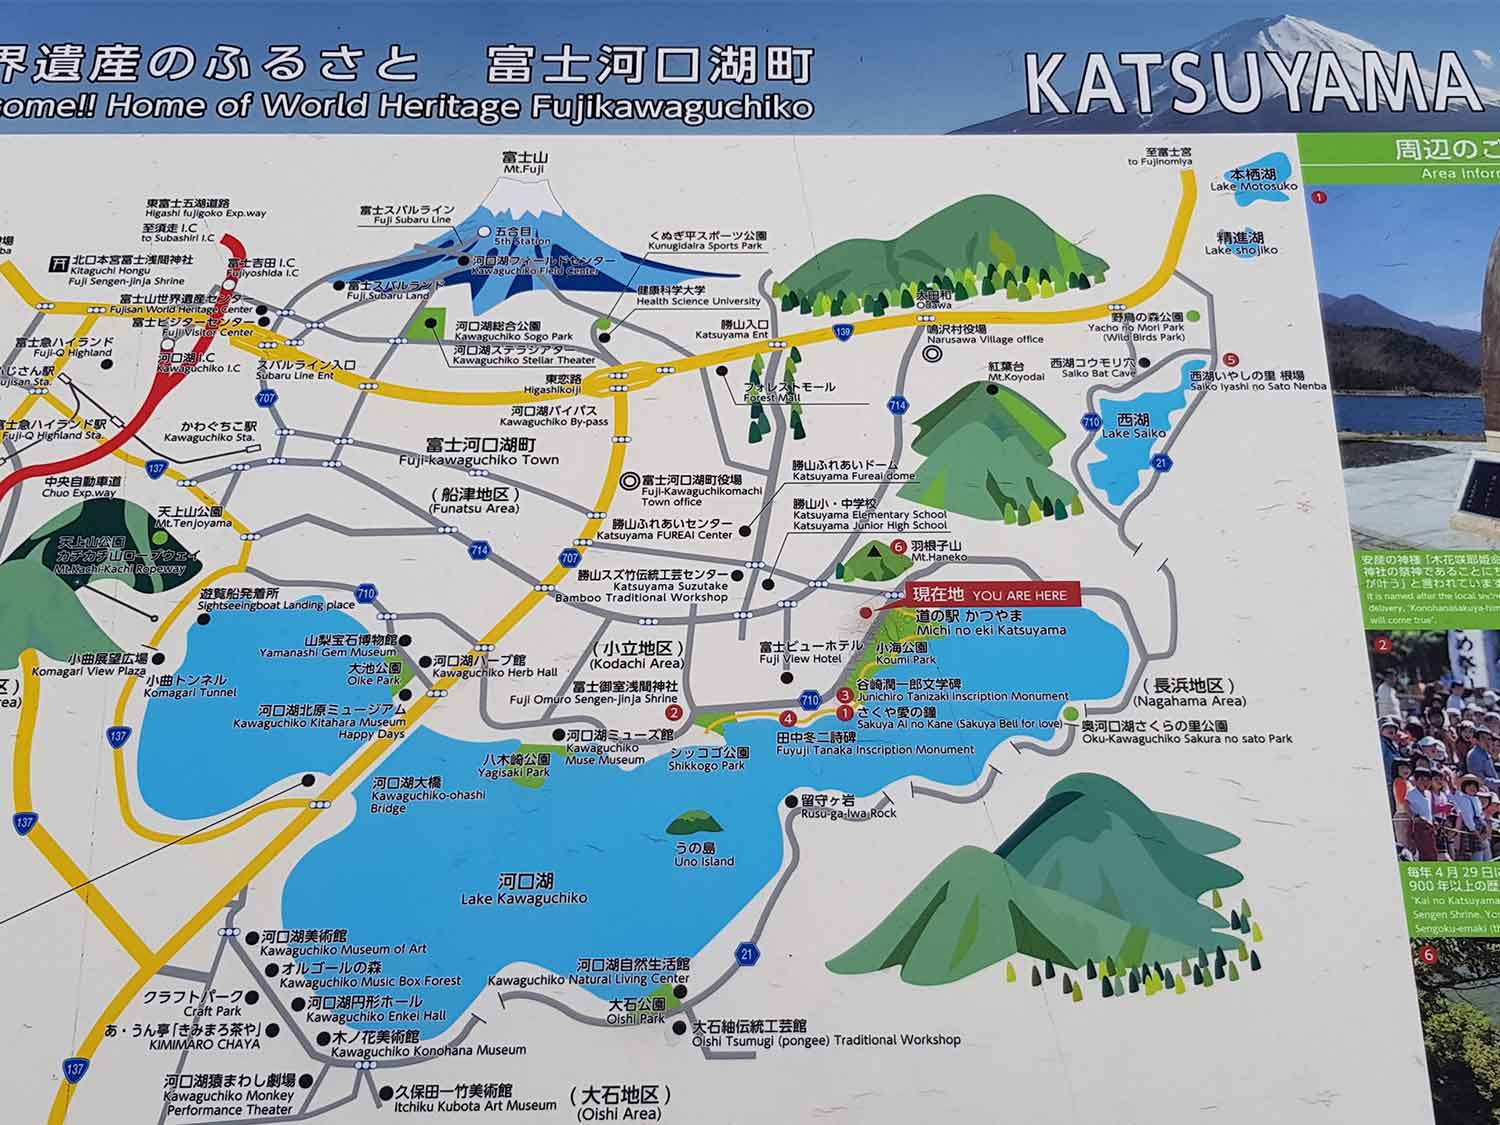 Local map of the Katsuyama district and the Five Fuji Lakes